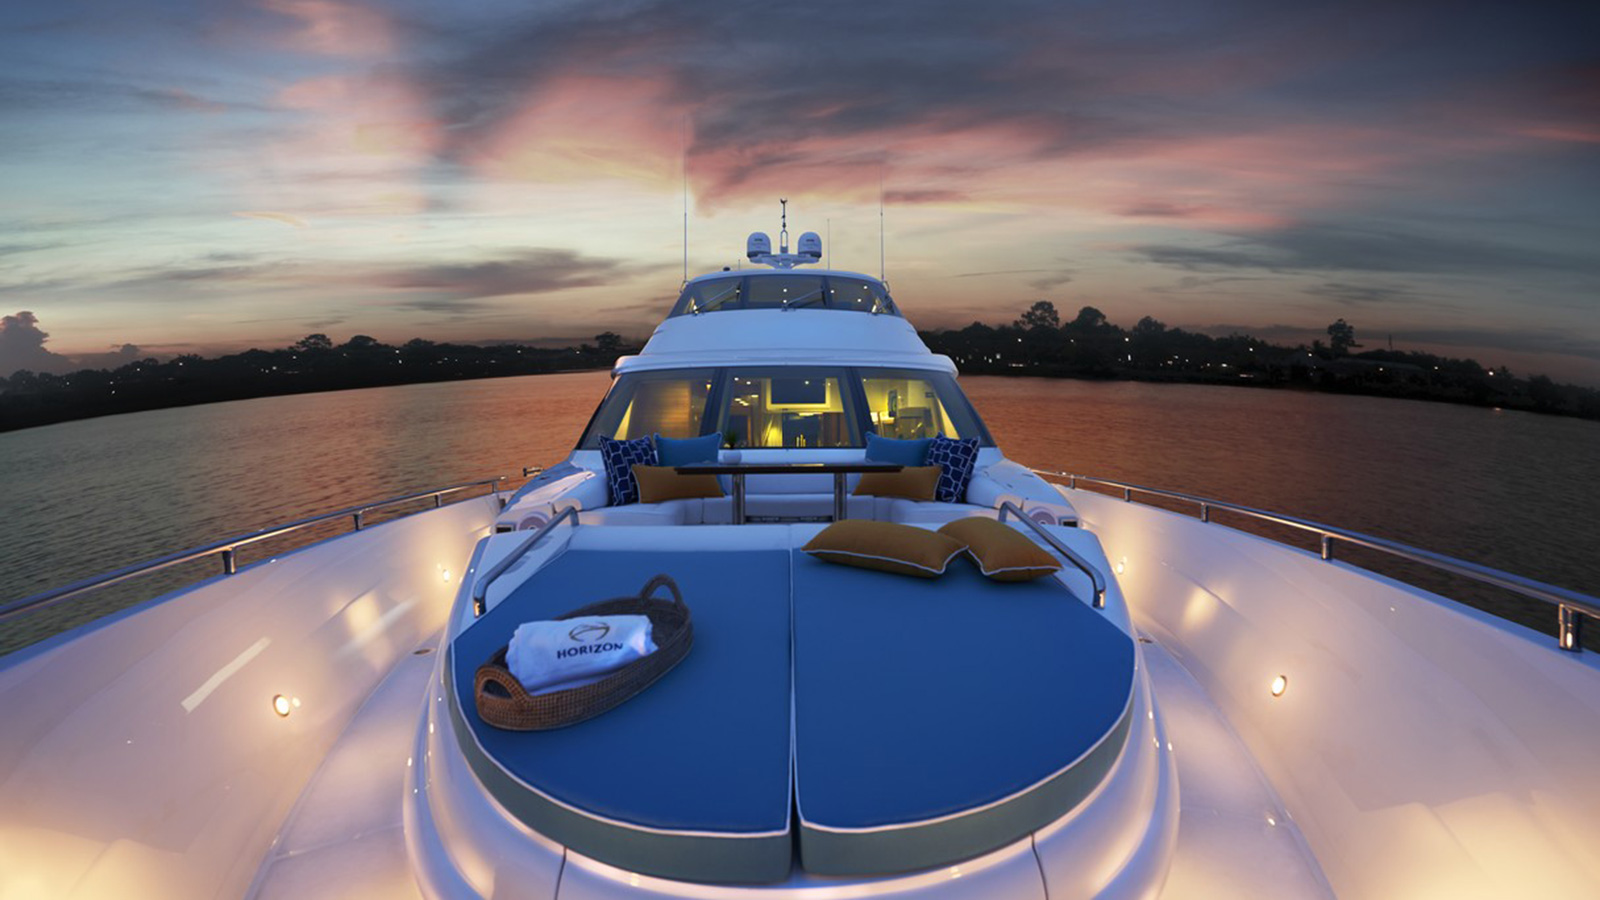 horizon-yachts-e88-hull-number-20-features-a-foredeck-seating-area